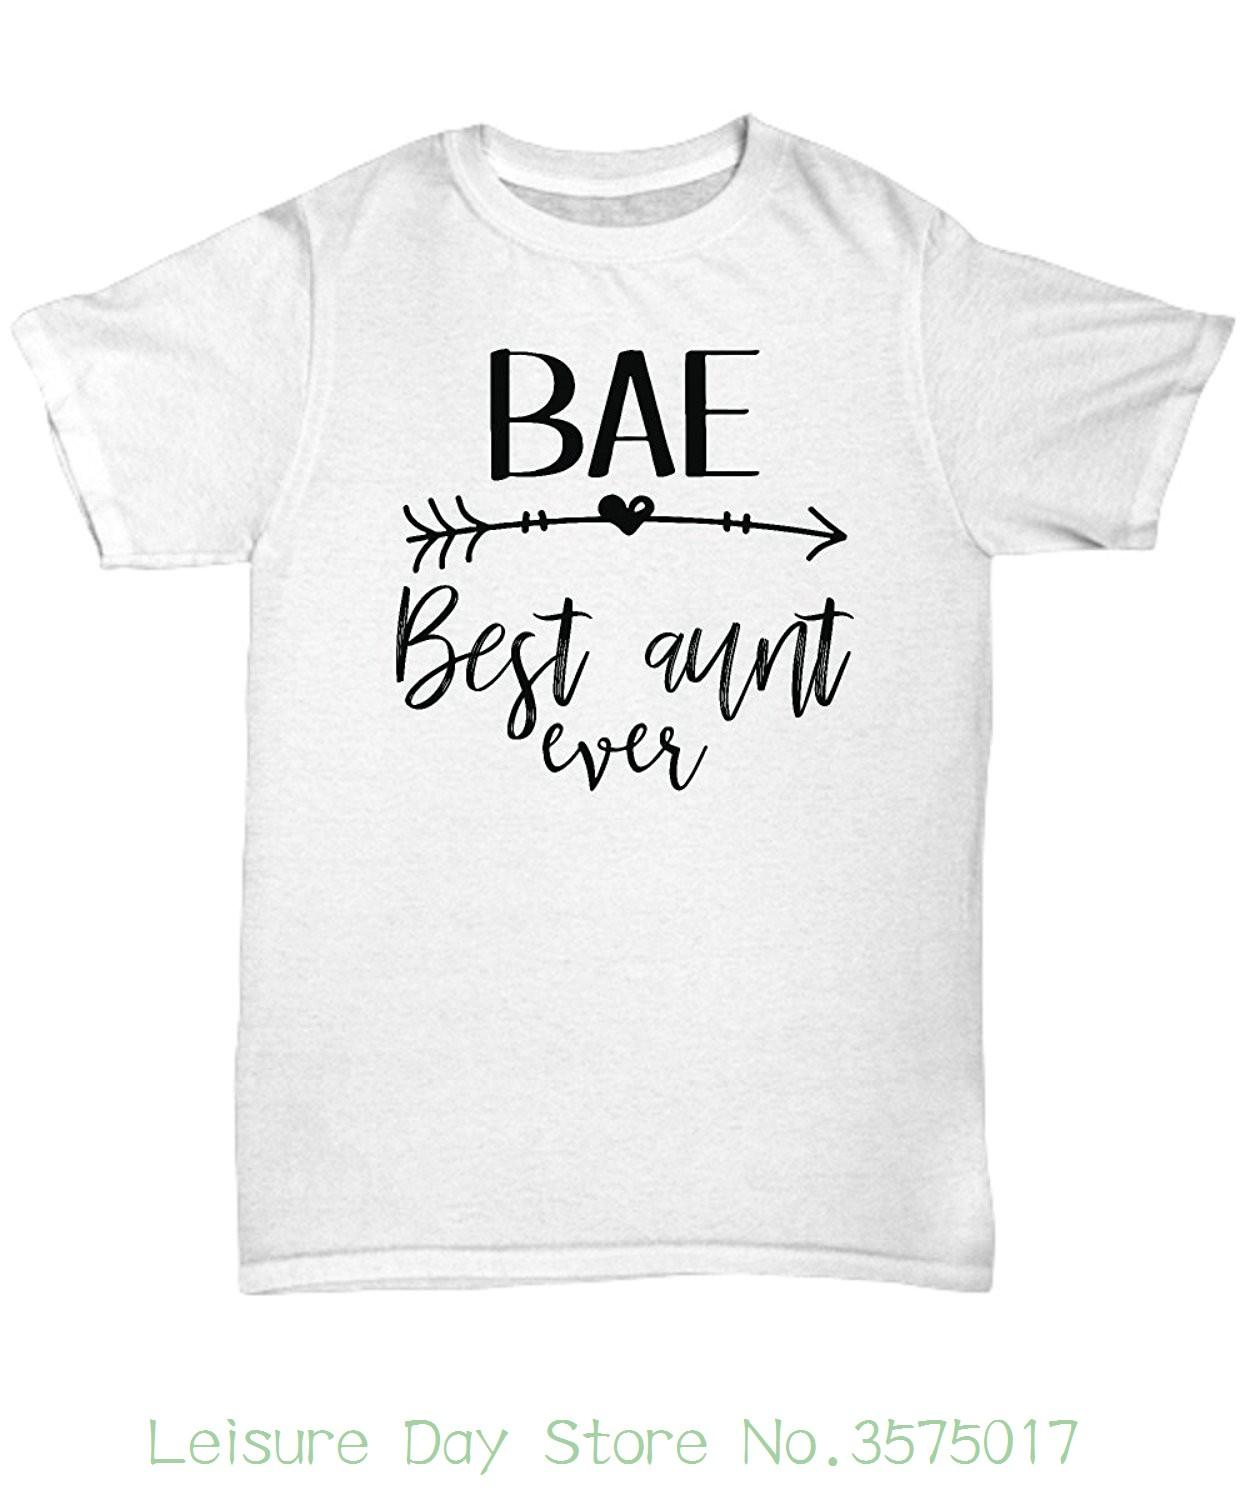 Man Print T Shirt Hipster Mmandidesigns Bae Best Aunt Ever T Shirt